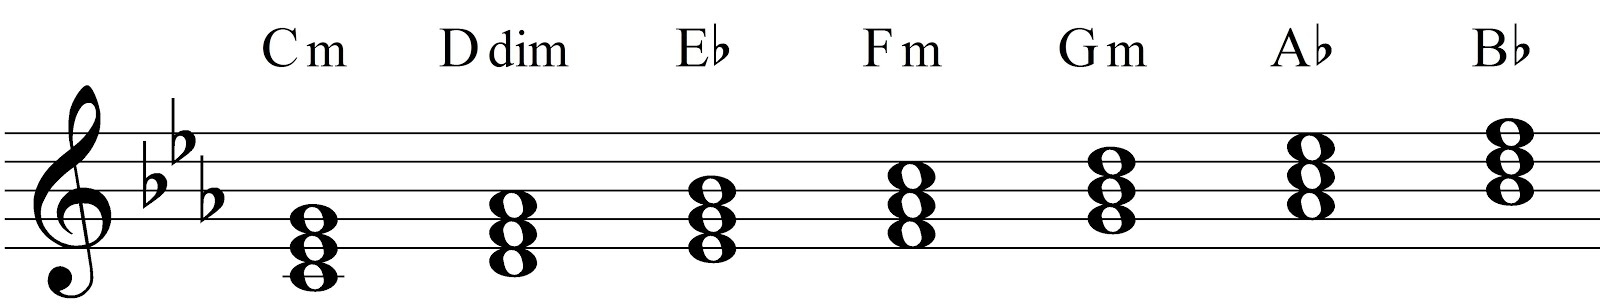 A photo showing the chords in the key of C minor, which is a part of learning music theory.